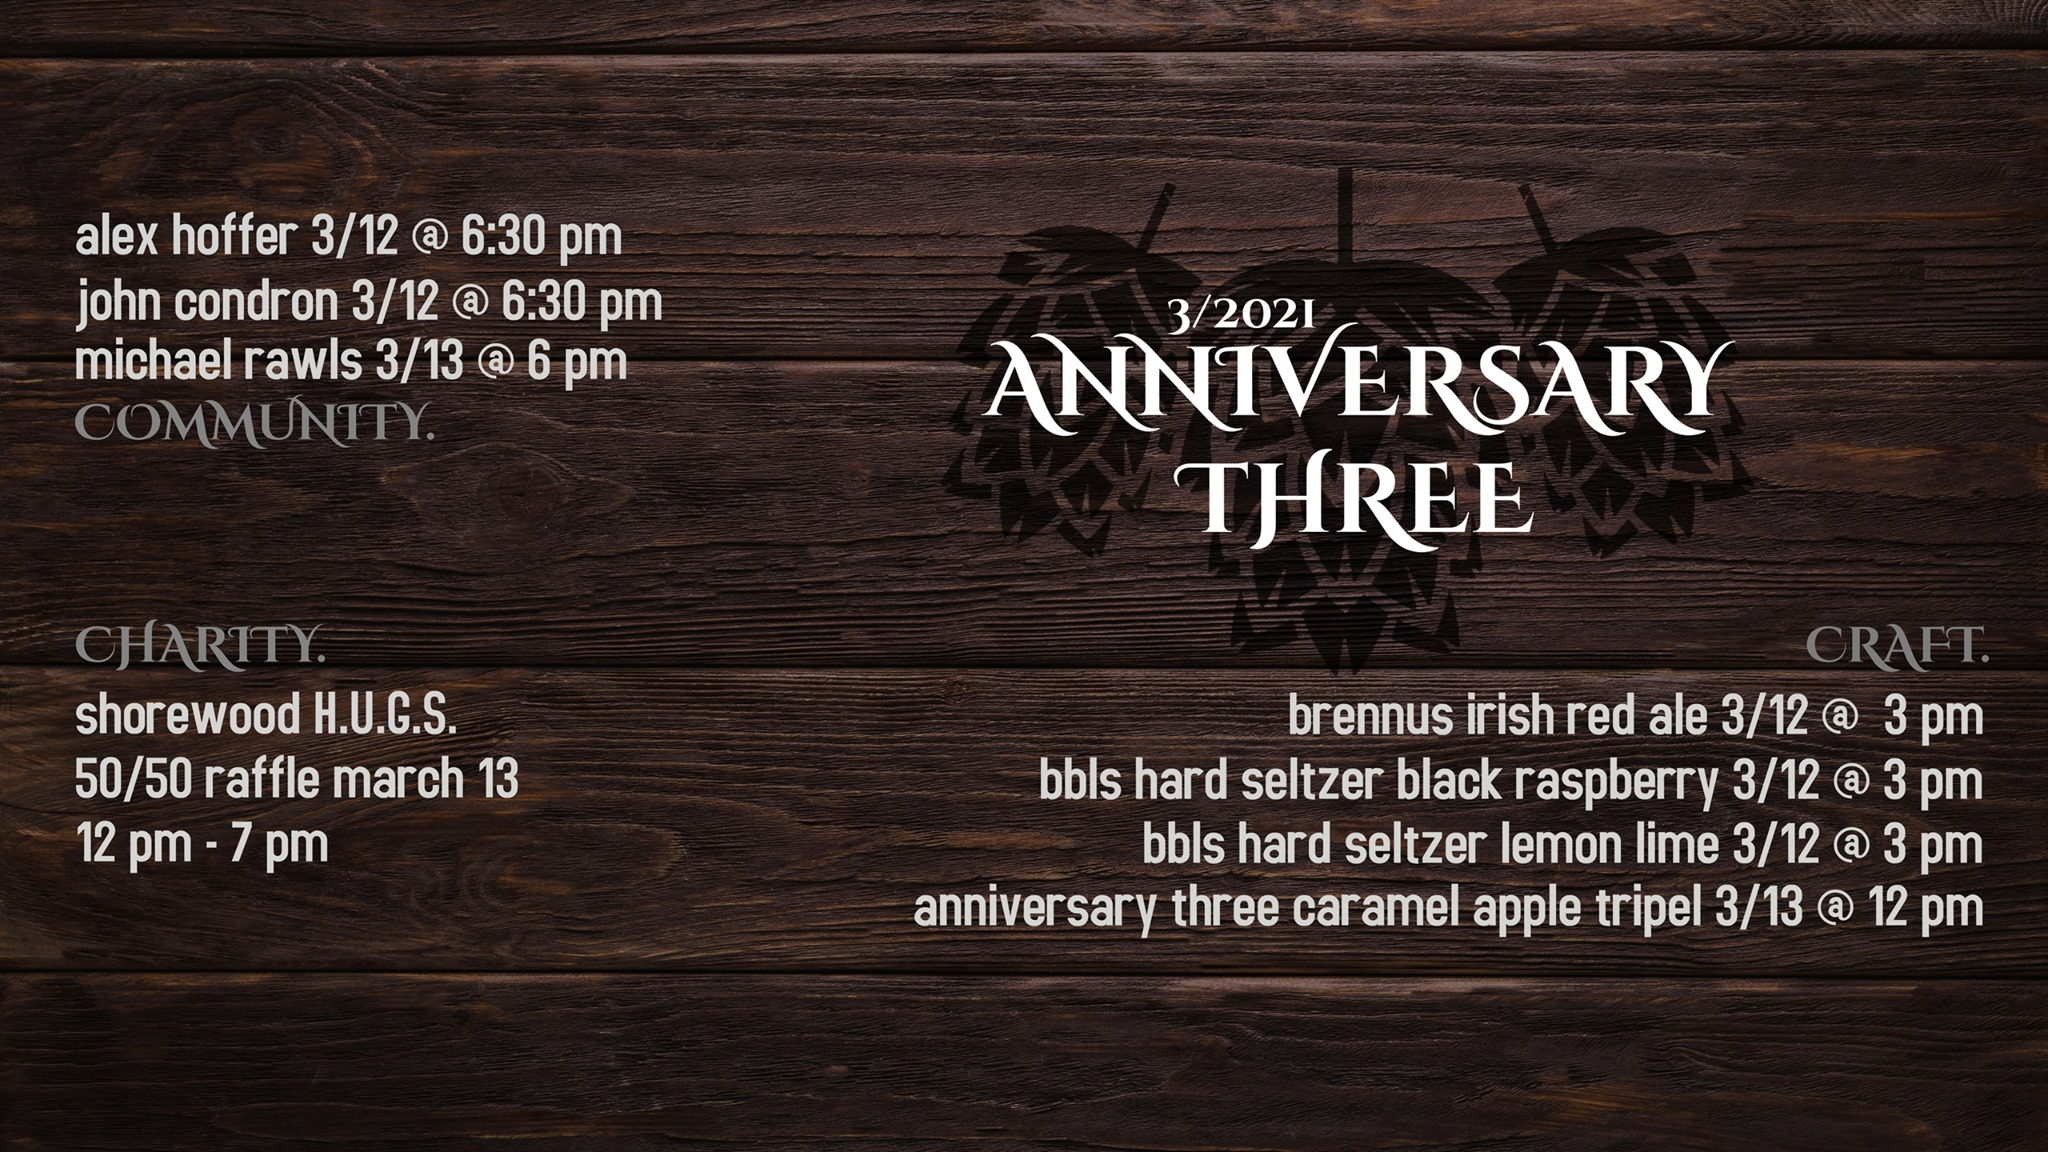 Graphic advertising Will County Brewing's Anniversary Three